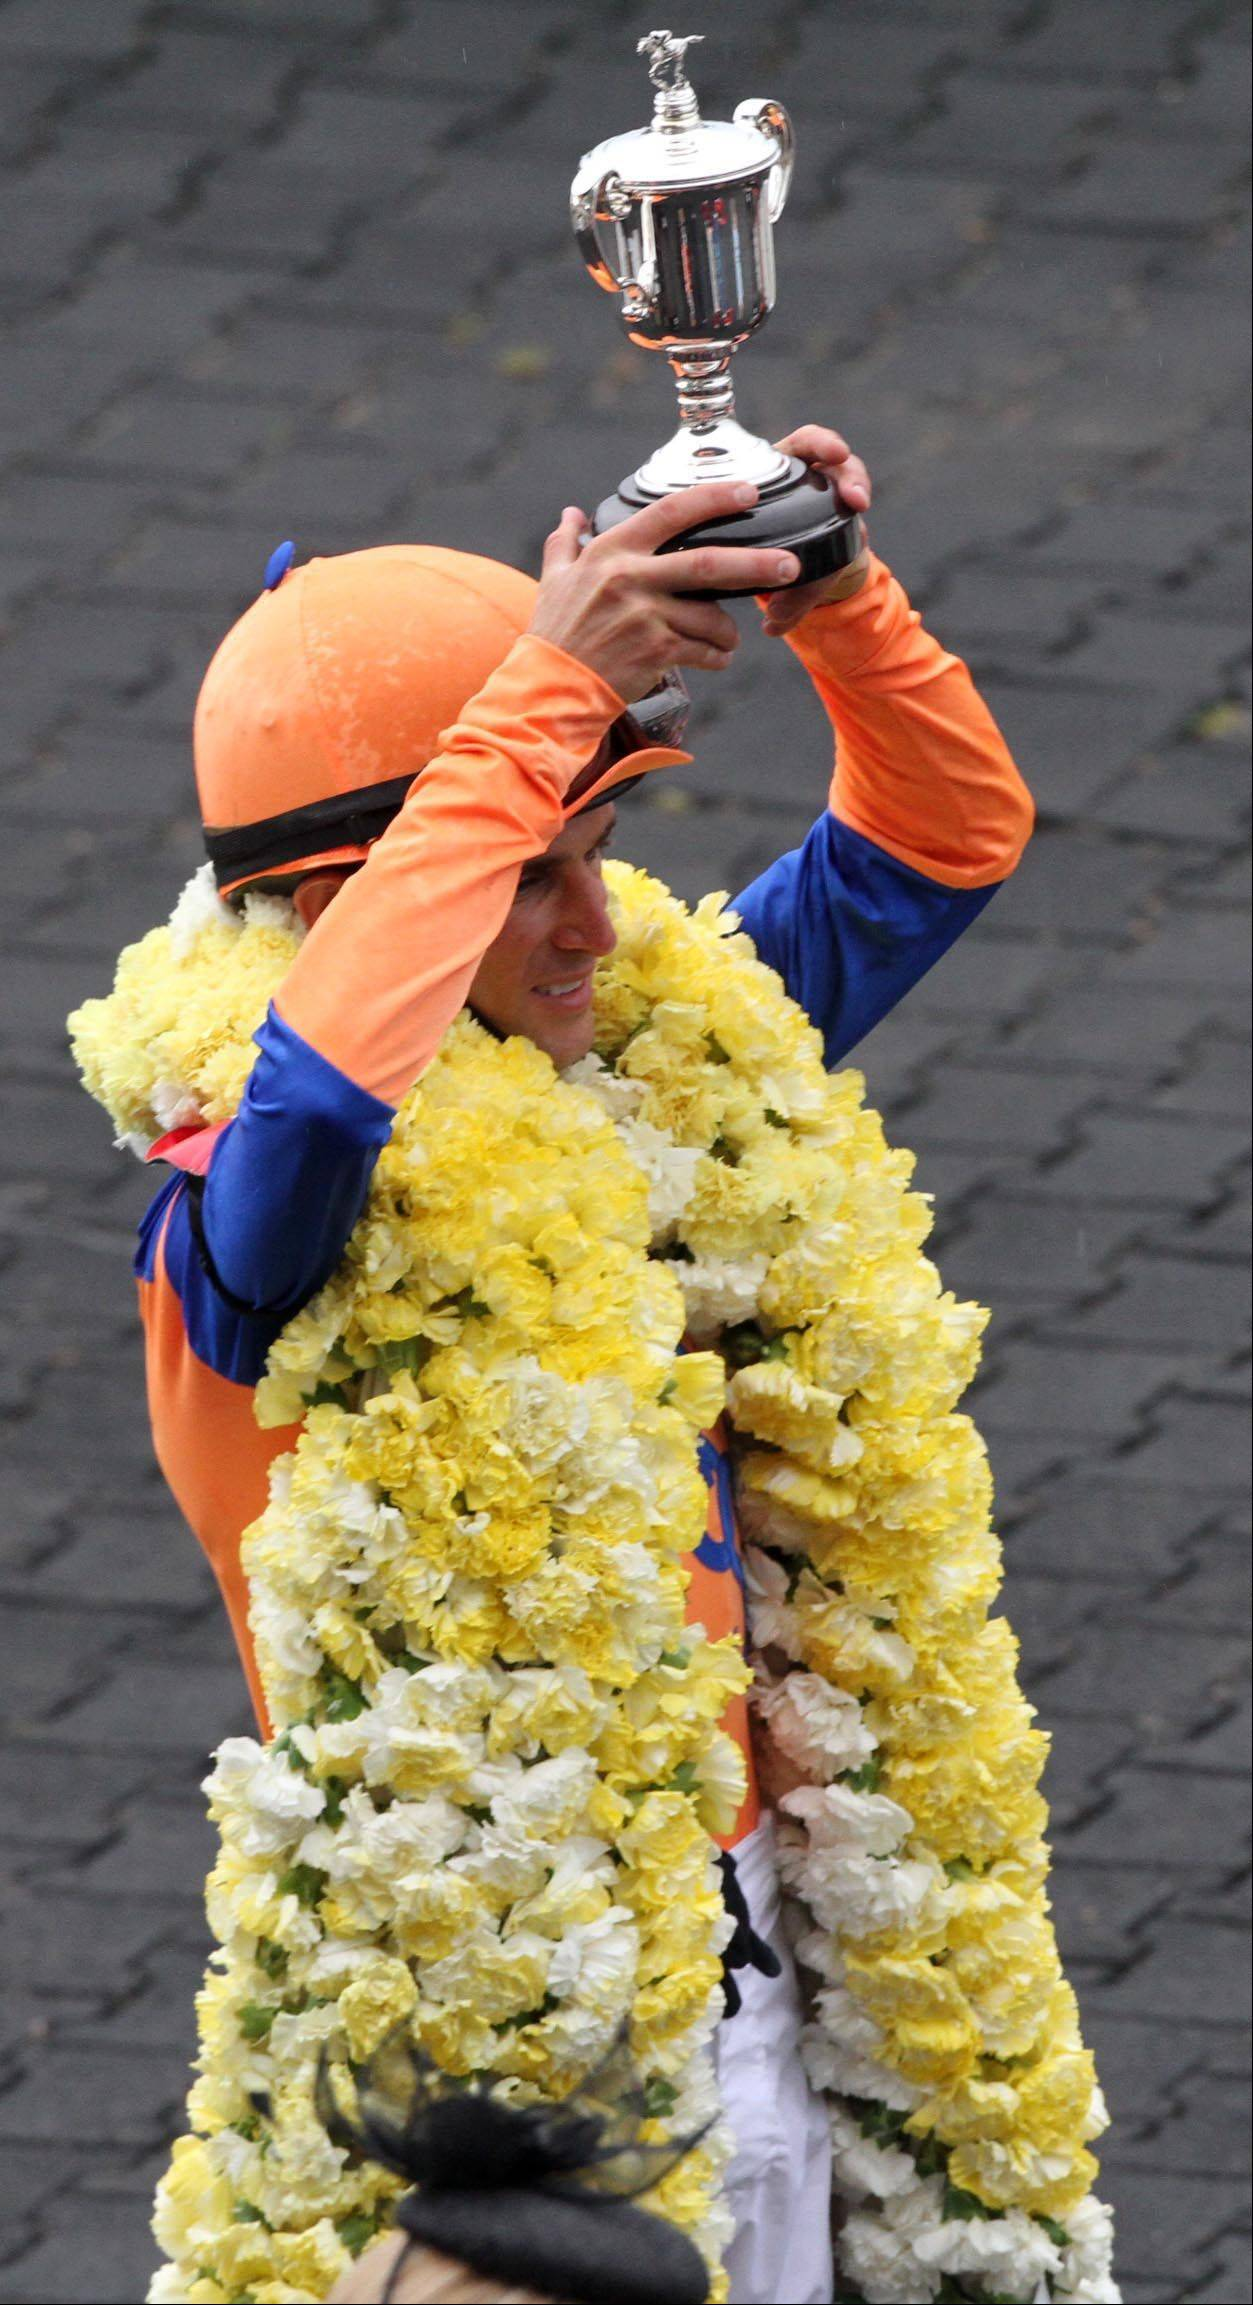 Ramon Dominguez celebrates wnning the Beverly D. trophy at Arlington Park on Saturday.